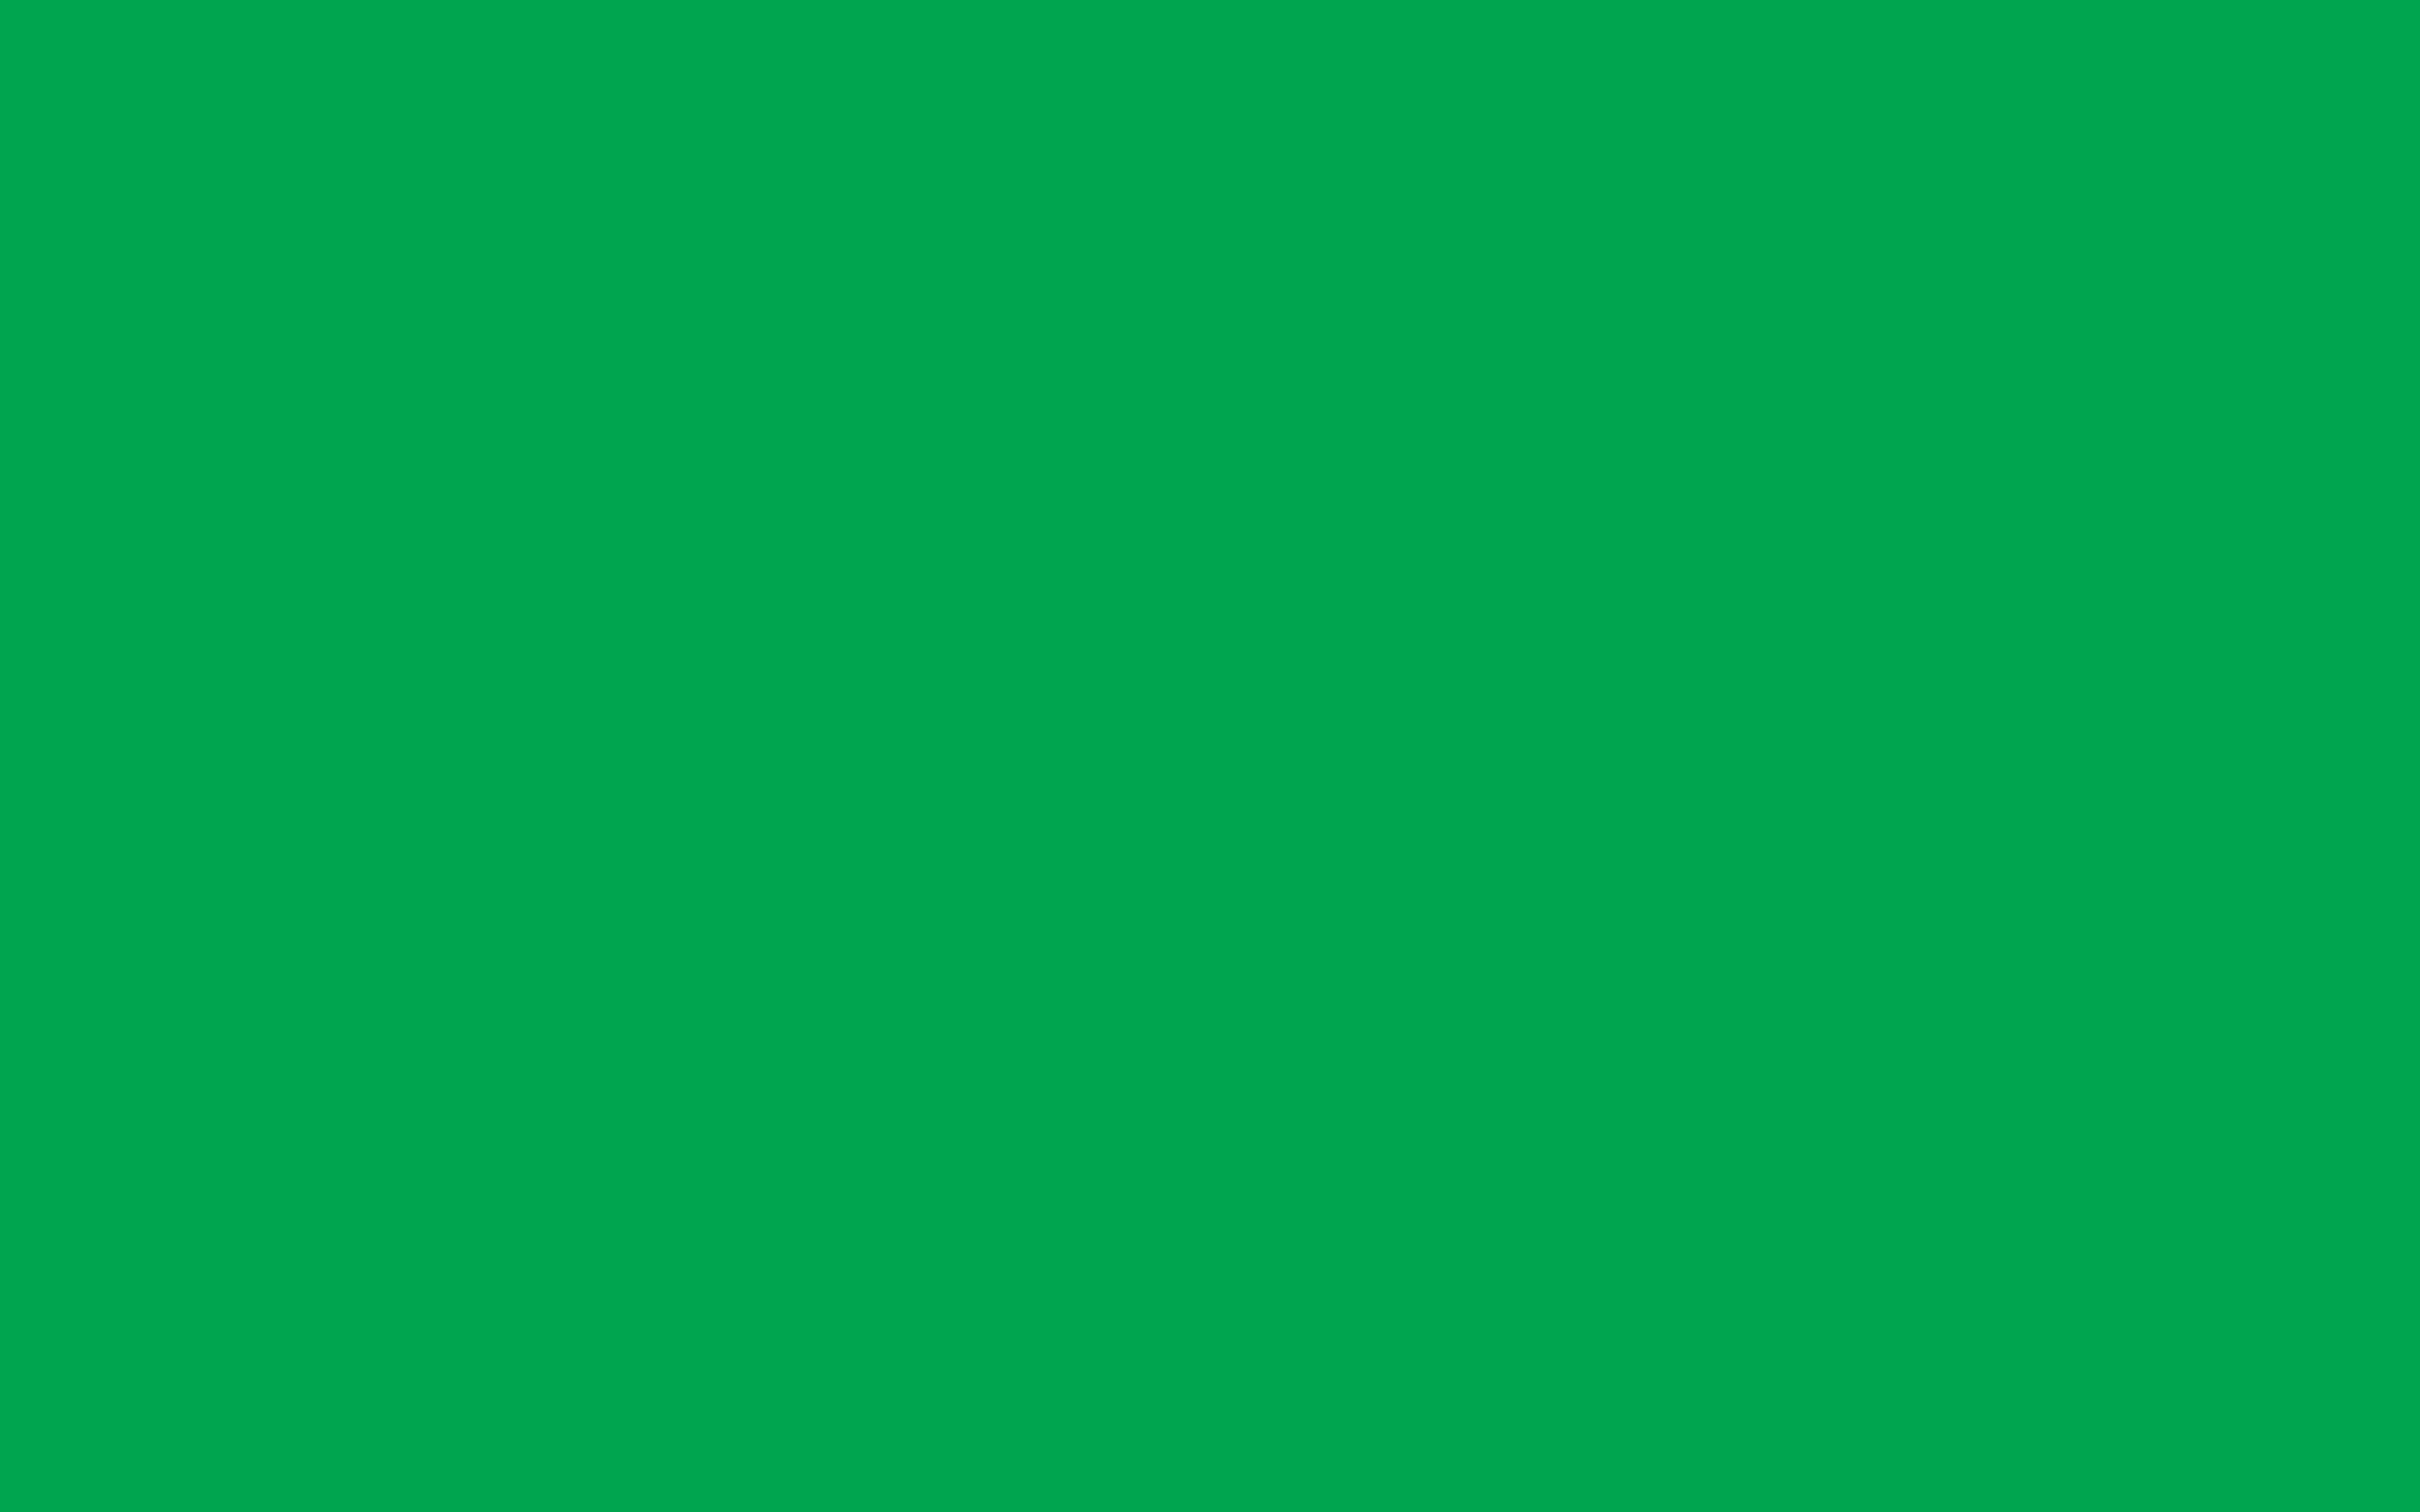 2560x1600 Green Pigment Solid Color Background